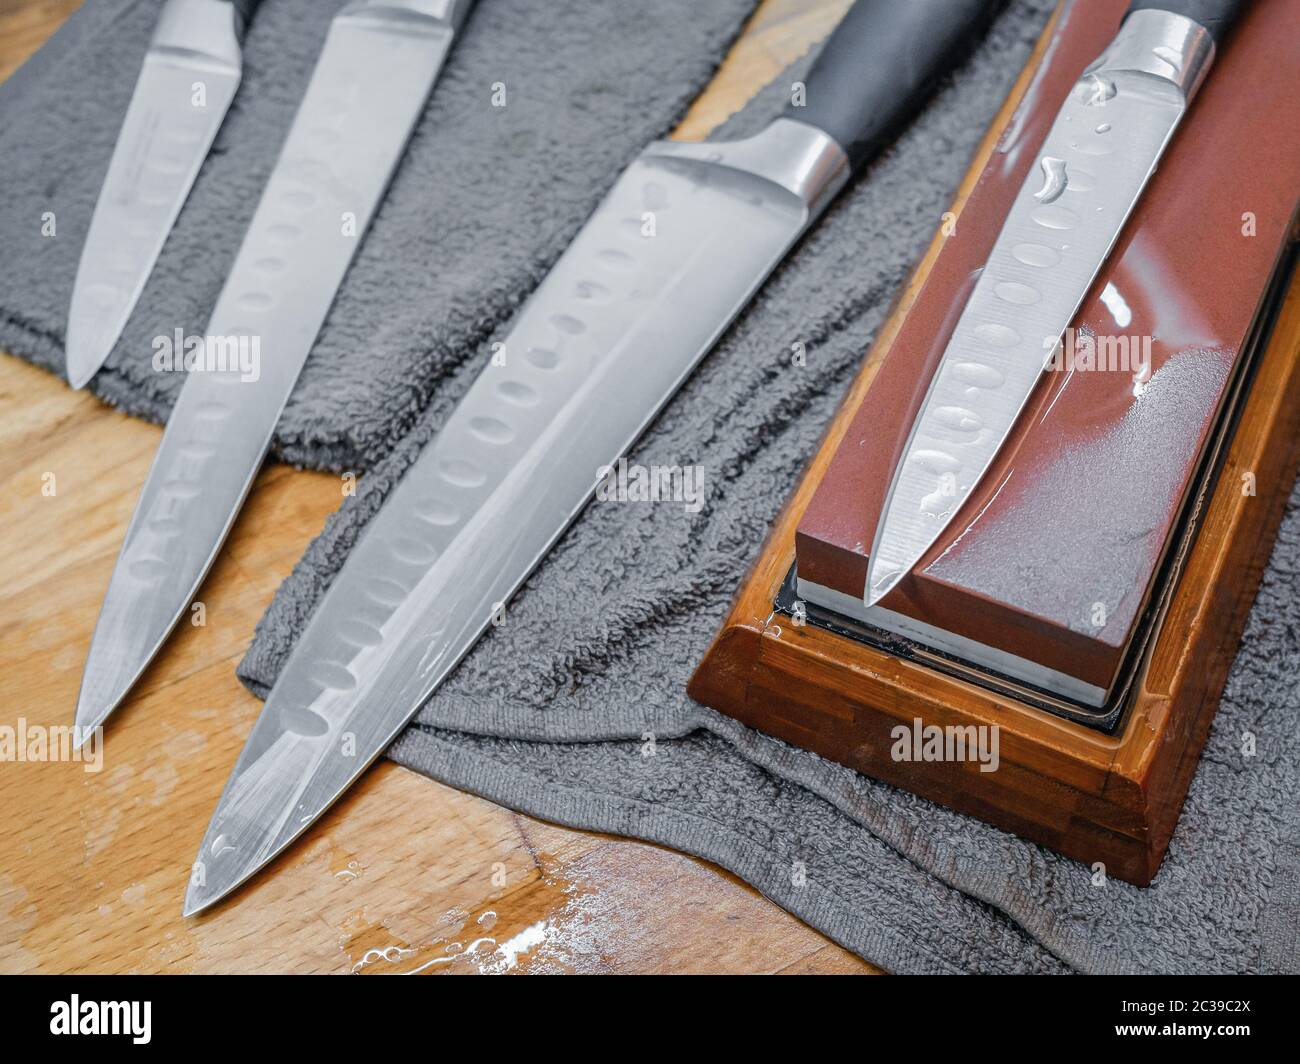 Selective Focus On The Blade Of A Steel Kitchen Knife Lying On A Water Whetstone The Process Of Sharpening A Knife Blade To Razor Sharpness On A Bla Stock Photo Alamy